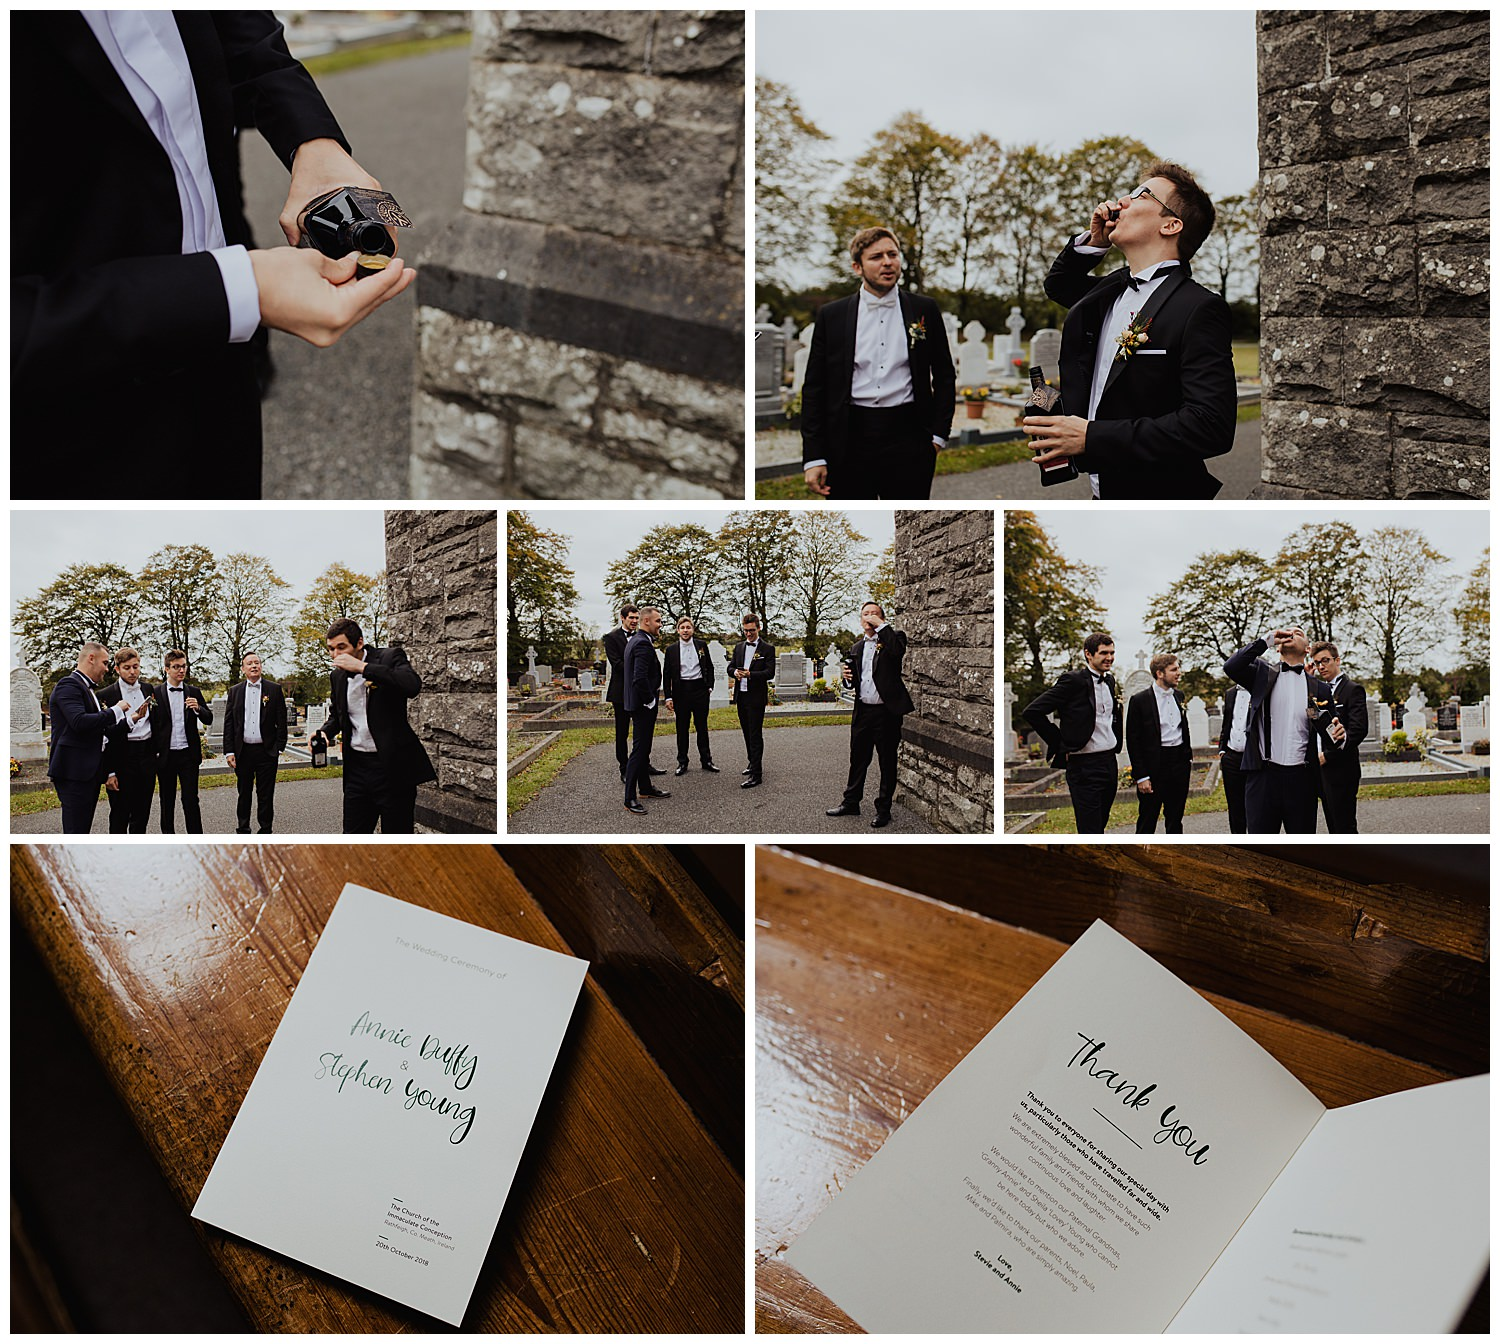 a+s_ballymagarvey_village_wedding_photographer_livia_figueiredo_10.jpg